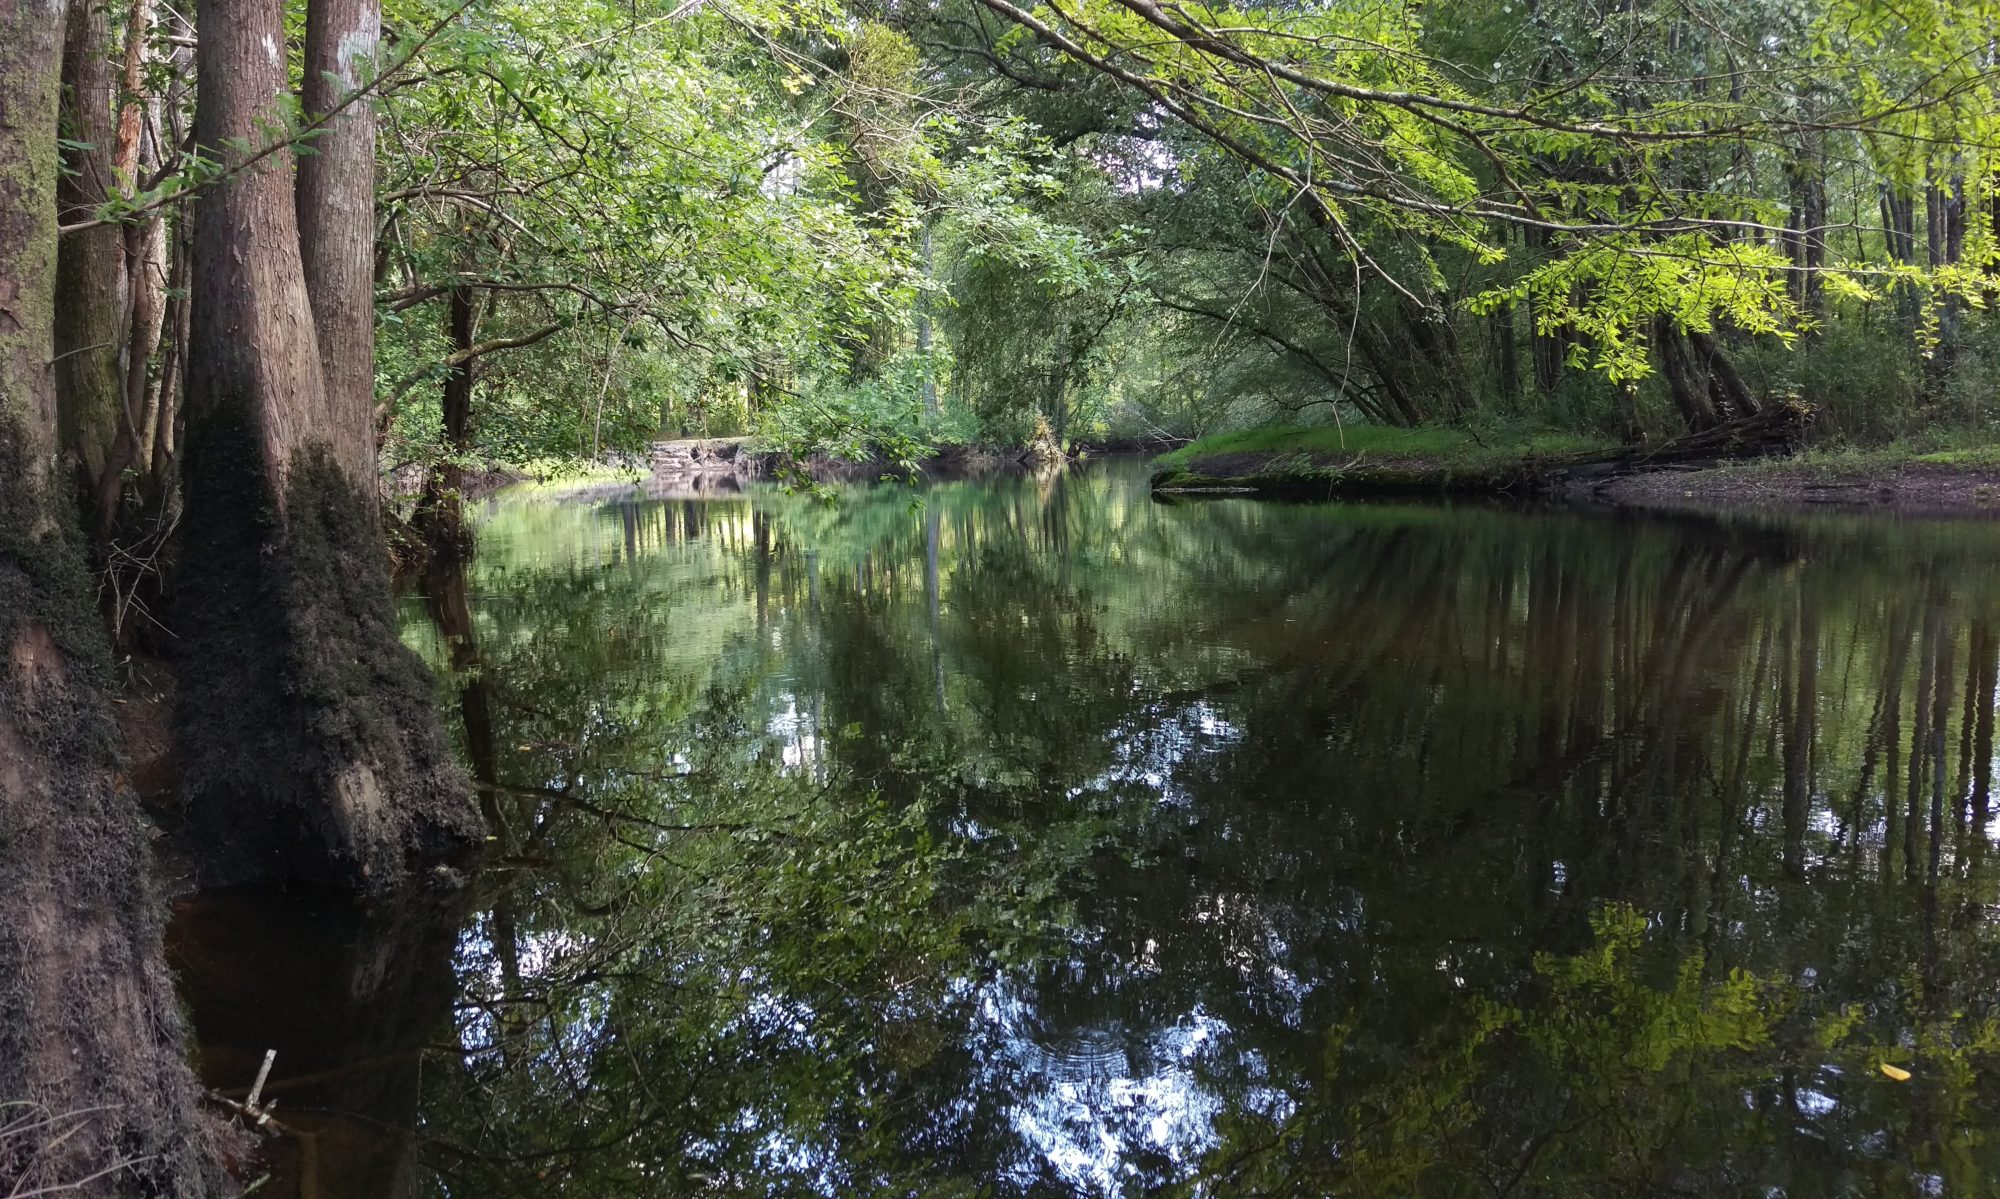 The Lumber River Conservancy